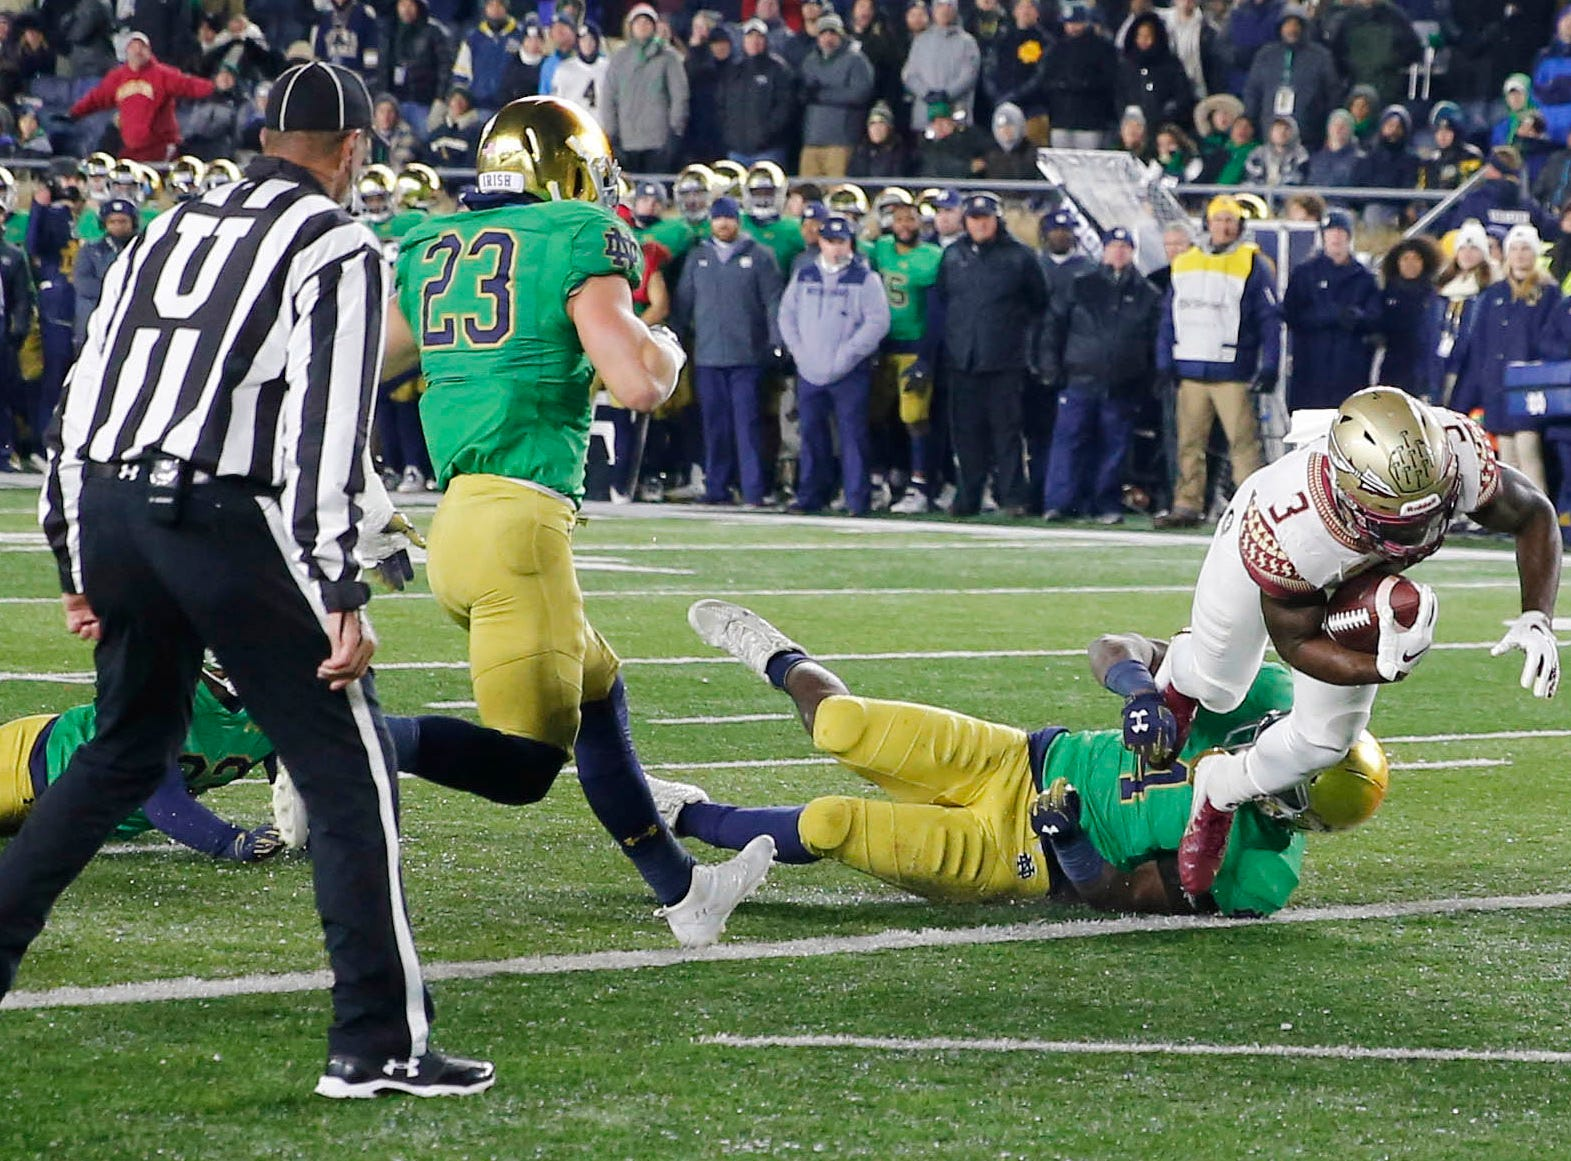 Nov 10, 2018; South Bend, IN, USA; Florida State Seminoles running back (3) Cam Akers scores a touchdown against the Notre Dame Fighting Irish during the second quarter at Notre Dame Stadium. Mandatory Credit: Brian Spurlock-USA TODAY Sports